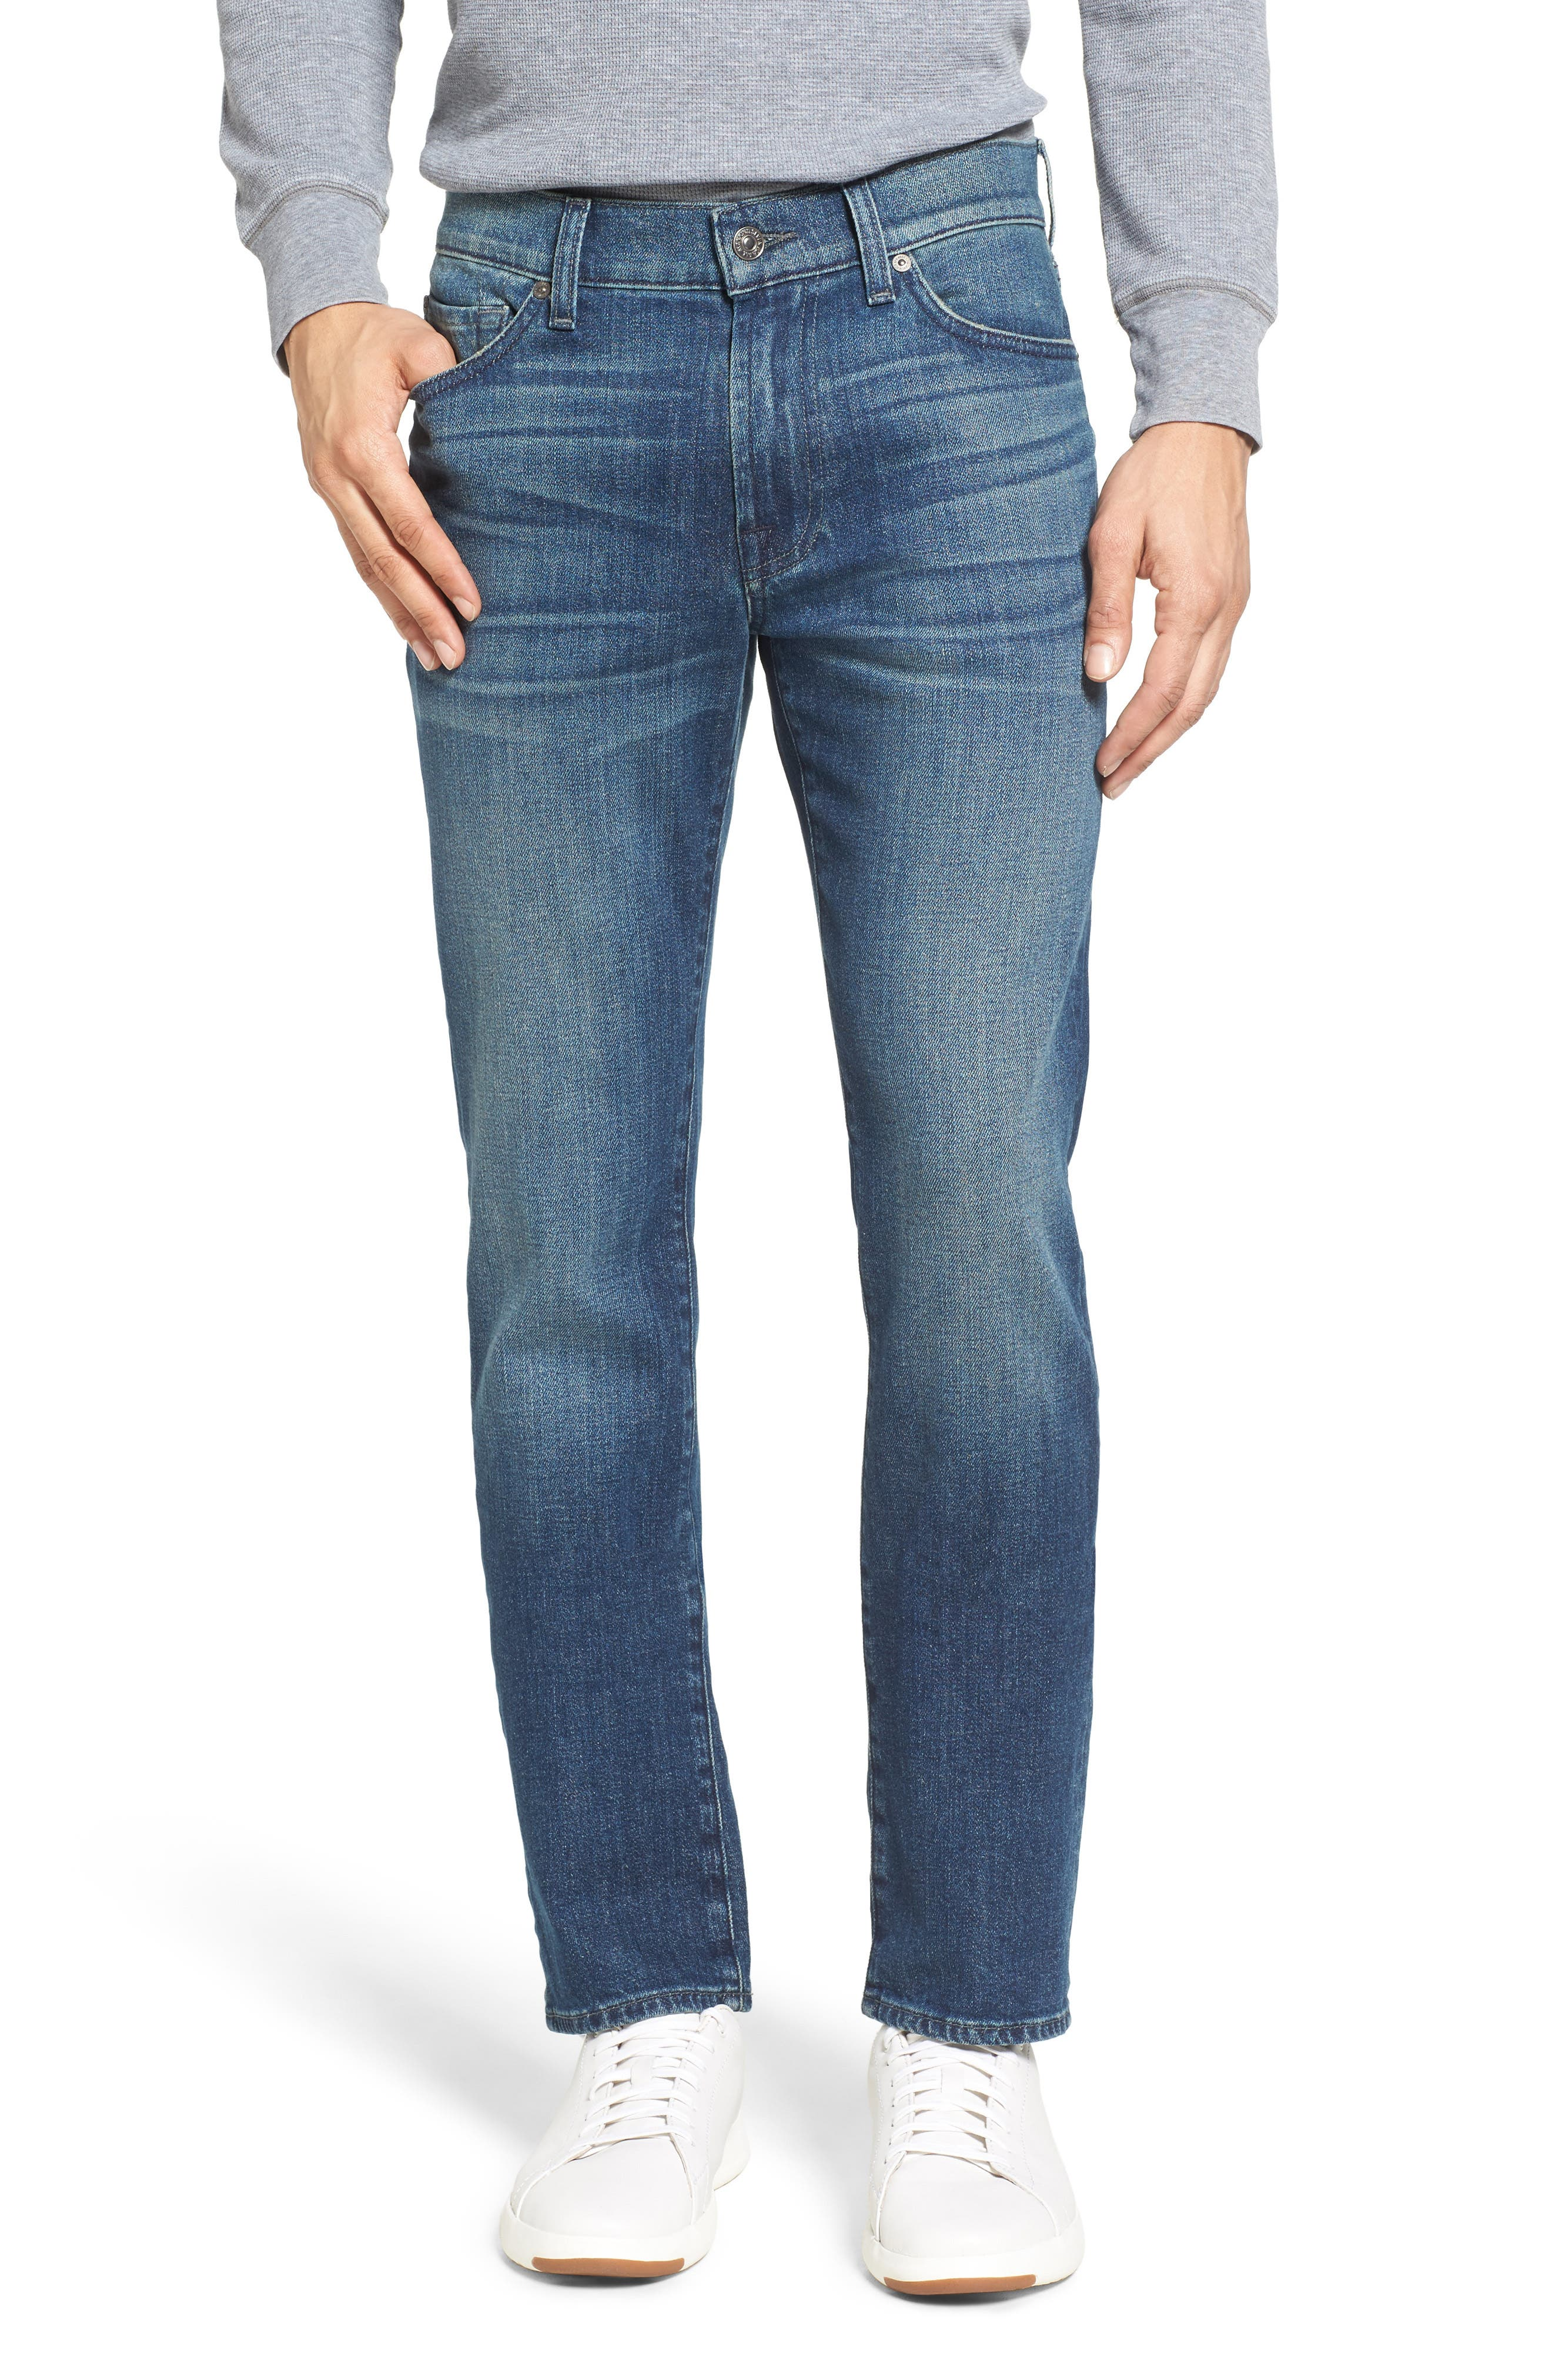 7 For All Mankind Slimmy Slim Fit Jeans,                             Alternate thumbnail 6, color,                             Calgary Blue